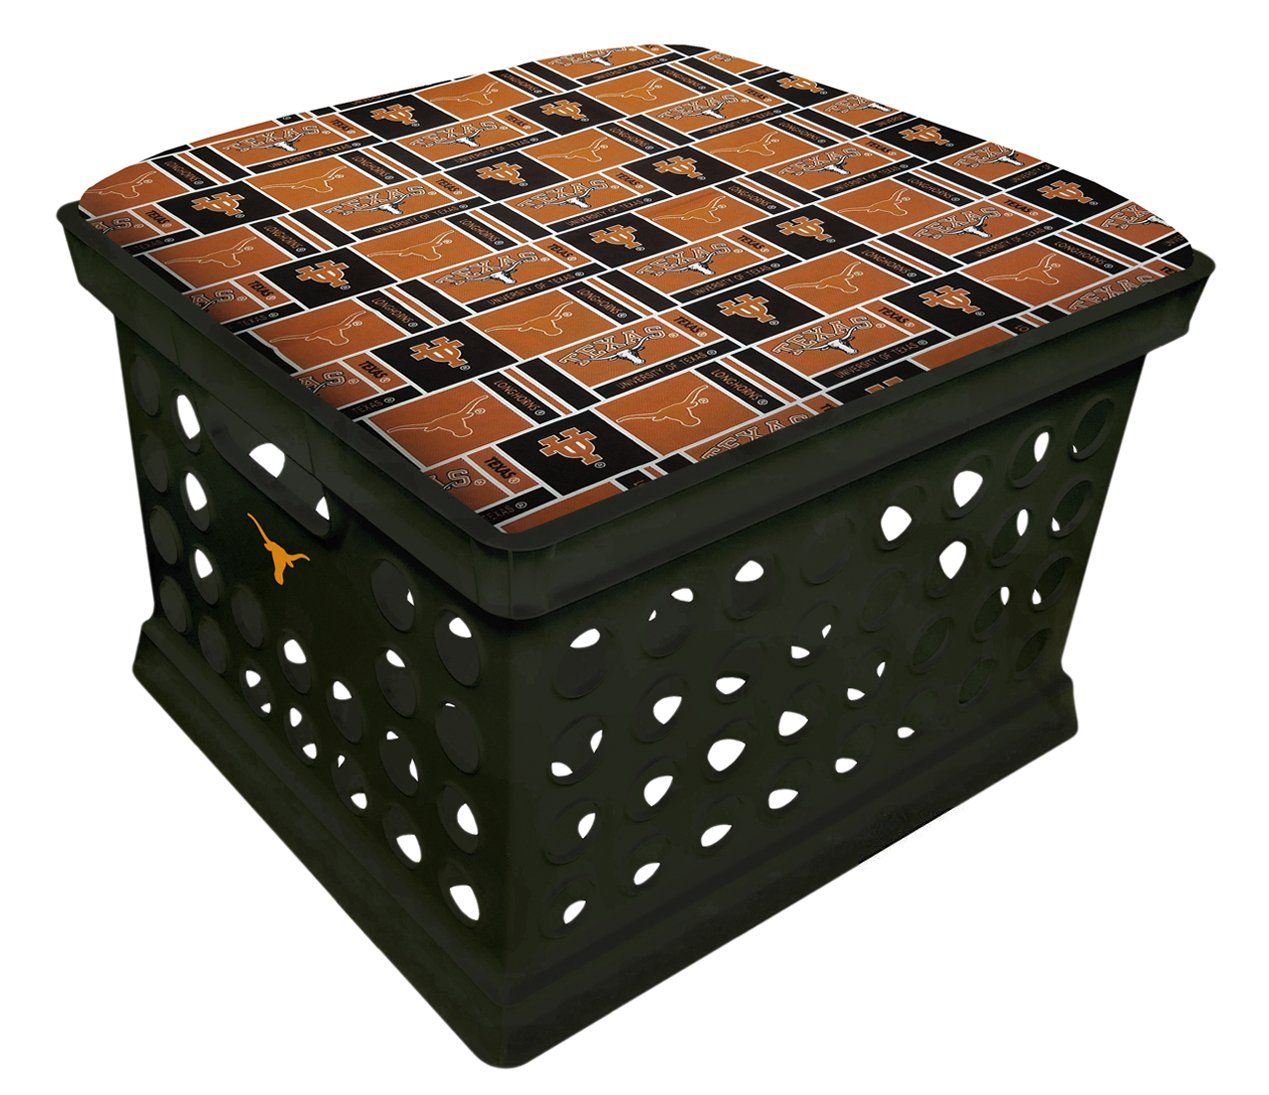 Black Utility Crate Storage Container Ottoman Bench Stool for Office/Home/School/Preschools with Your Choice of a Football Team Seat Cushion, Decal and a Free Nightlight! (Longhorns)